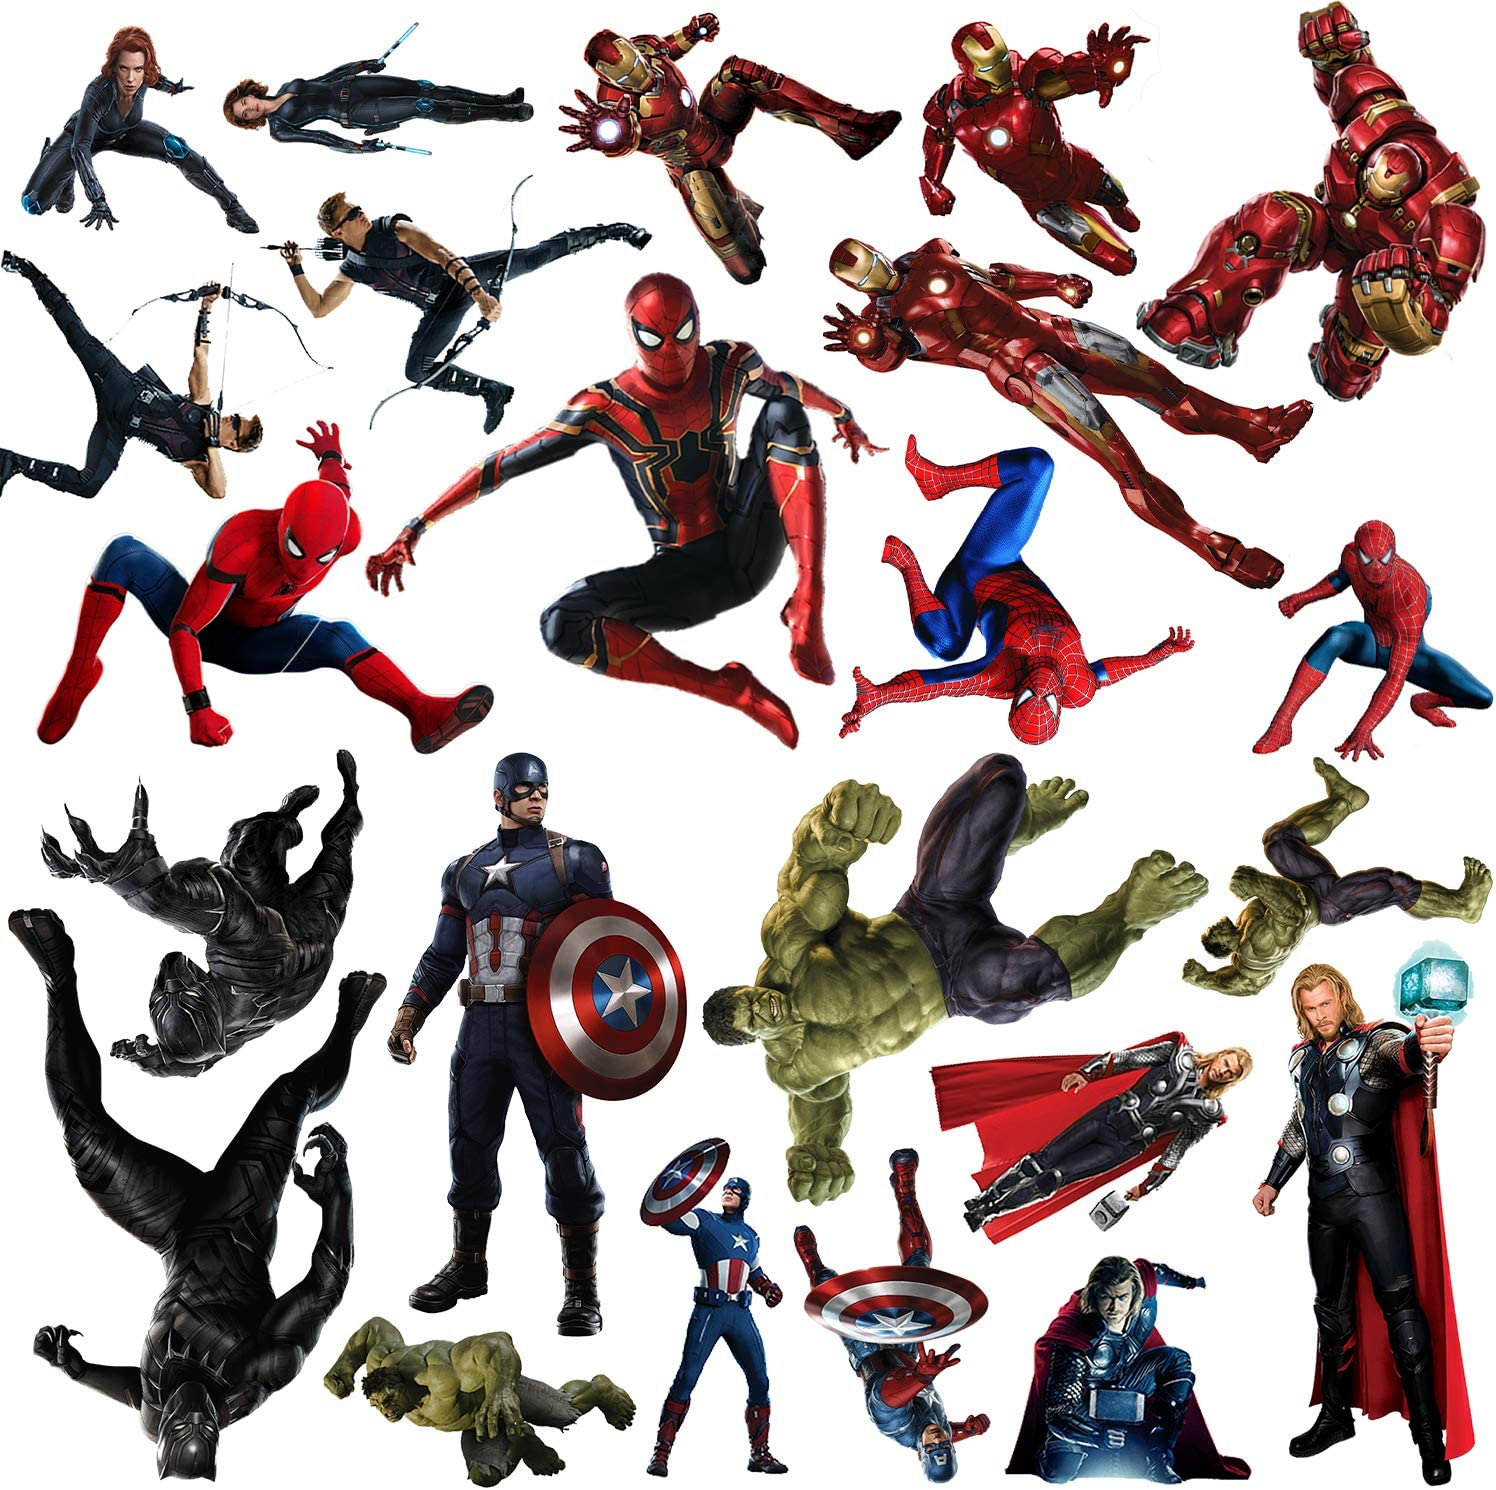 Superhero Wall Decals, 23 Pcs Large Waterproof Superhero Wall Kitchen Sticker Removable Decor Mural for Wall Bathroom Bedroom Living Room Kitchen Decoration